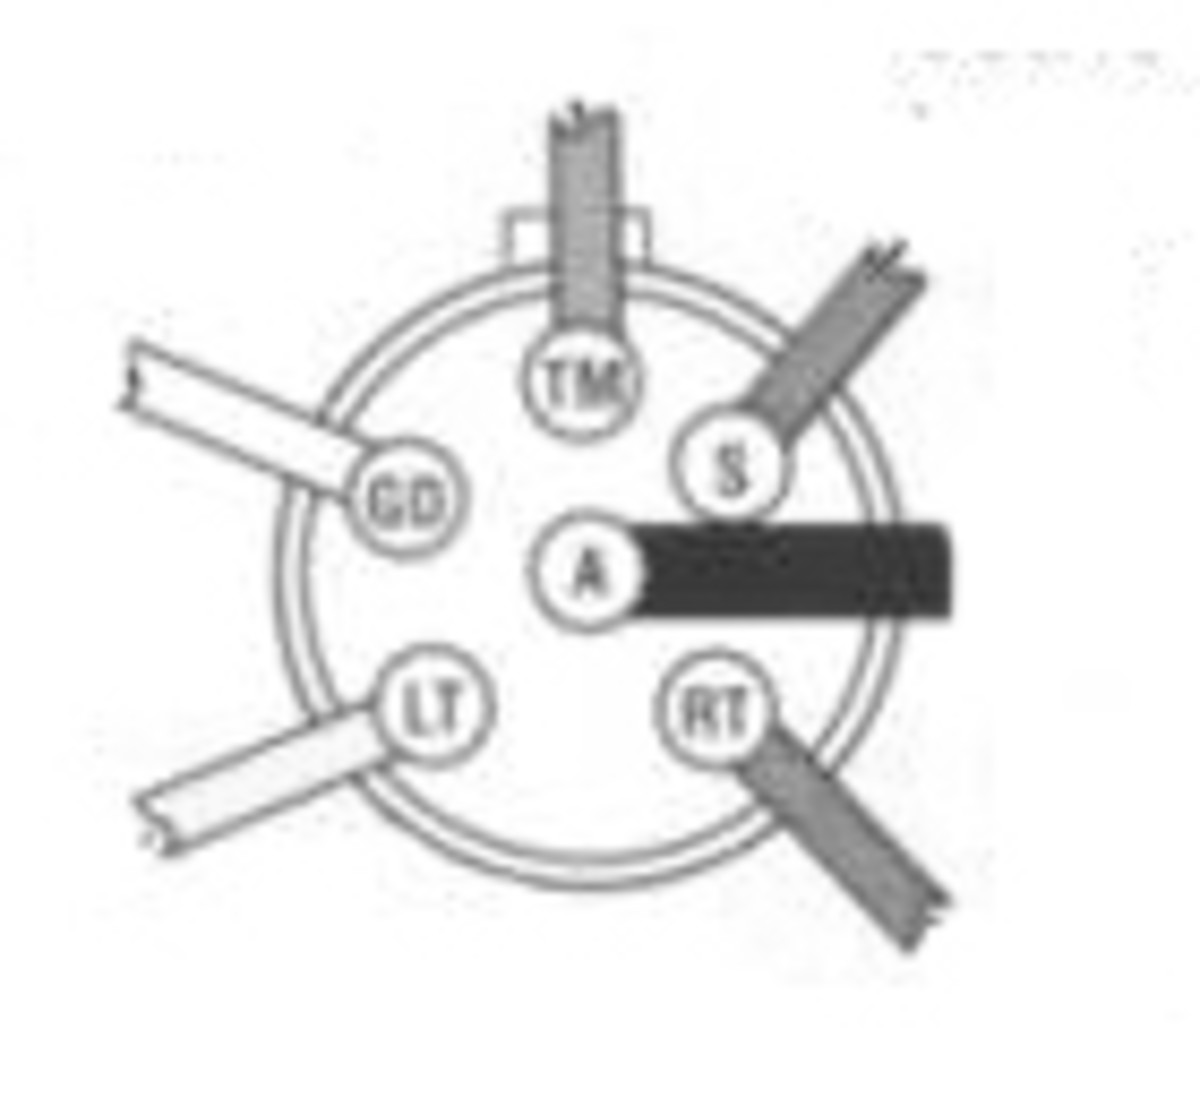 Diagram of wiring point definitions for a standard 6-pin connector